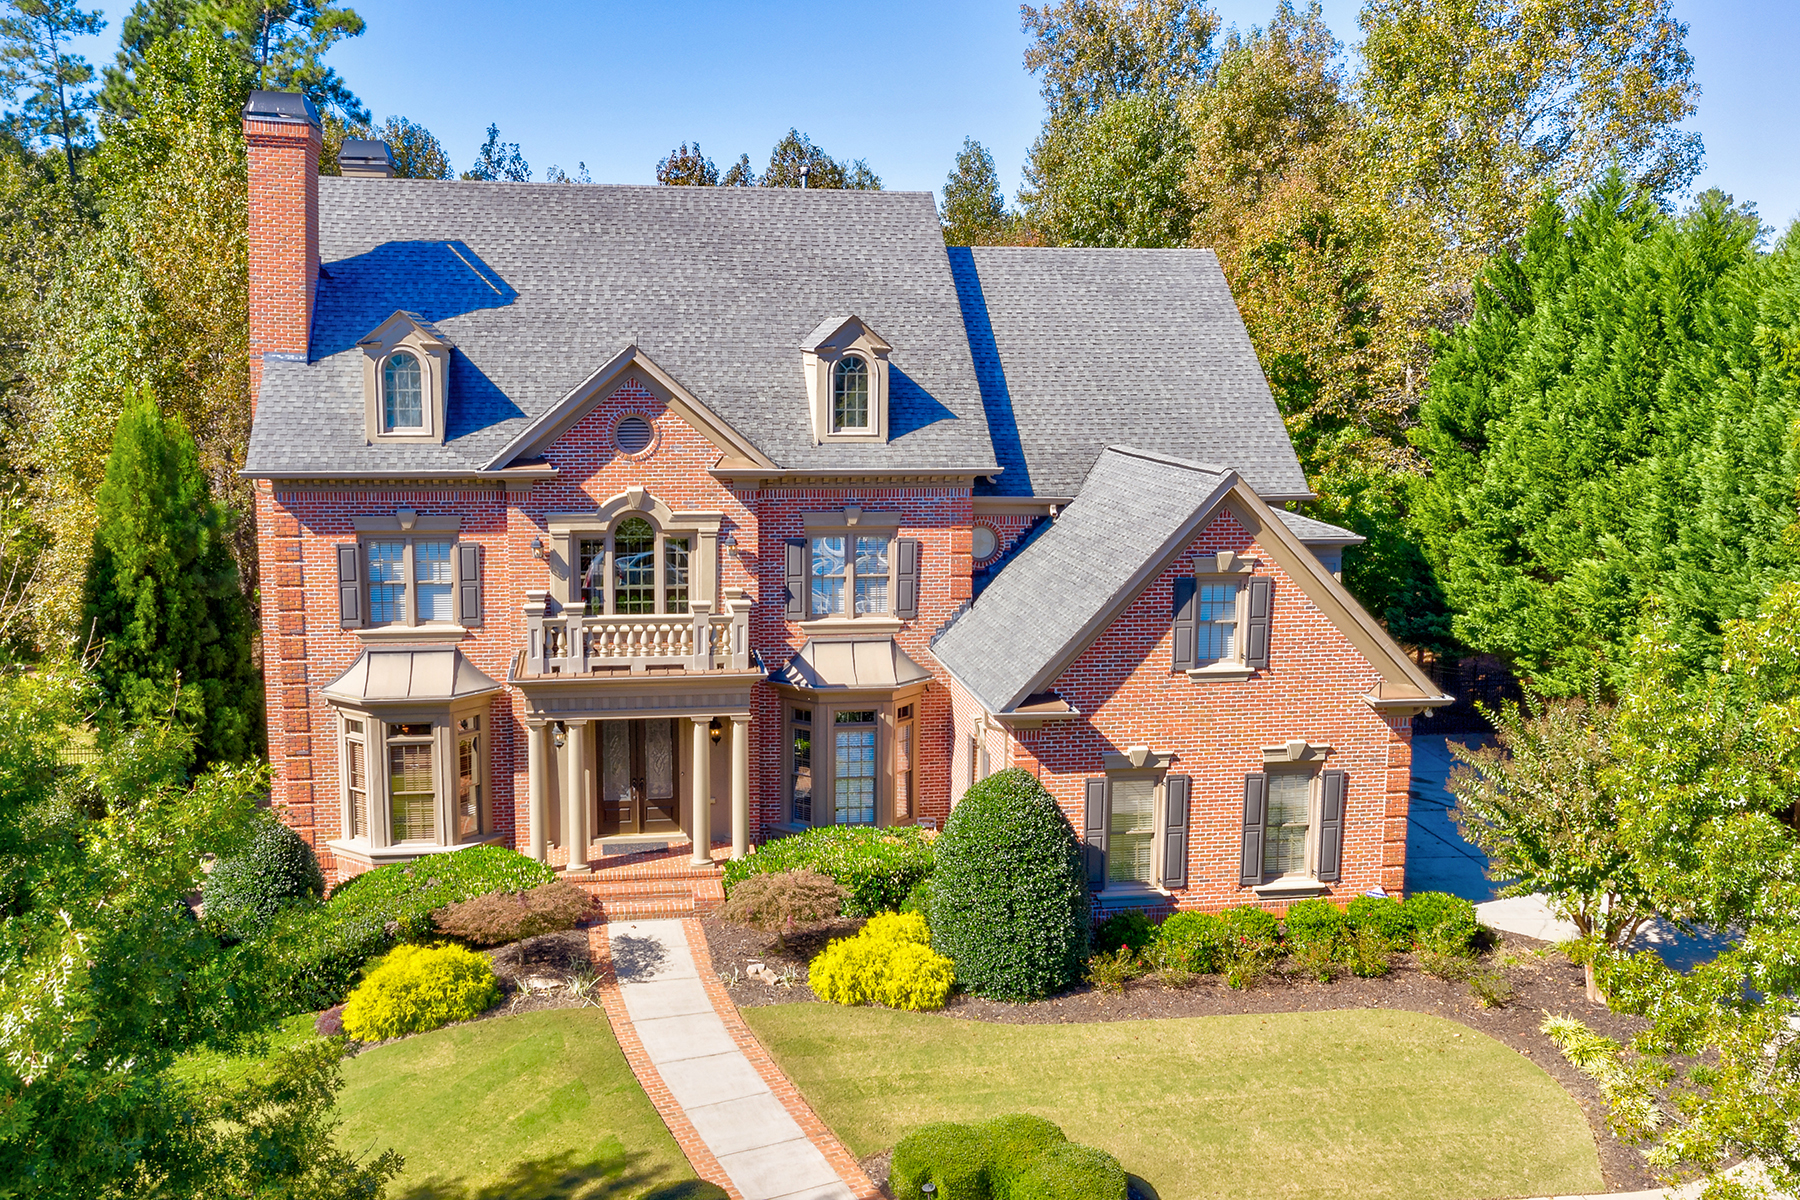 Single Family Home for Sale at Fabulous Home in Sugarloaf Country Club 2704 Thurleston Lane Duluth, Georgia 30097 United States